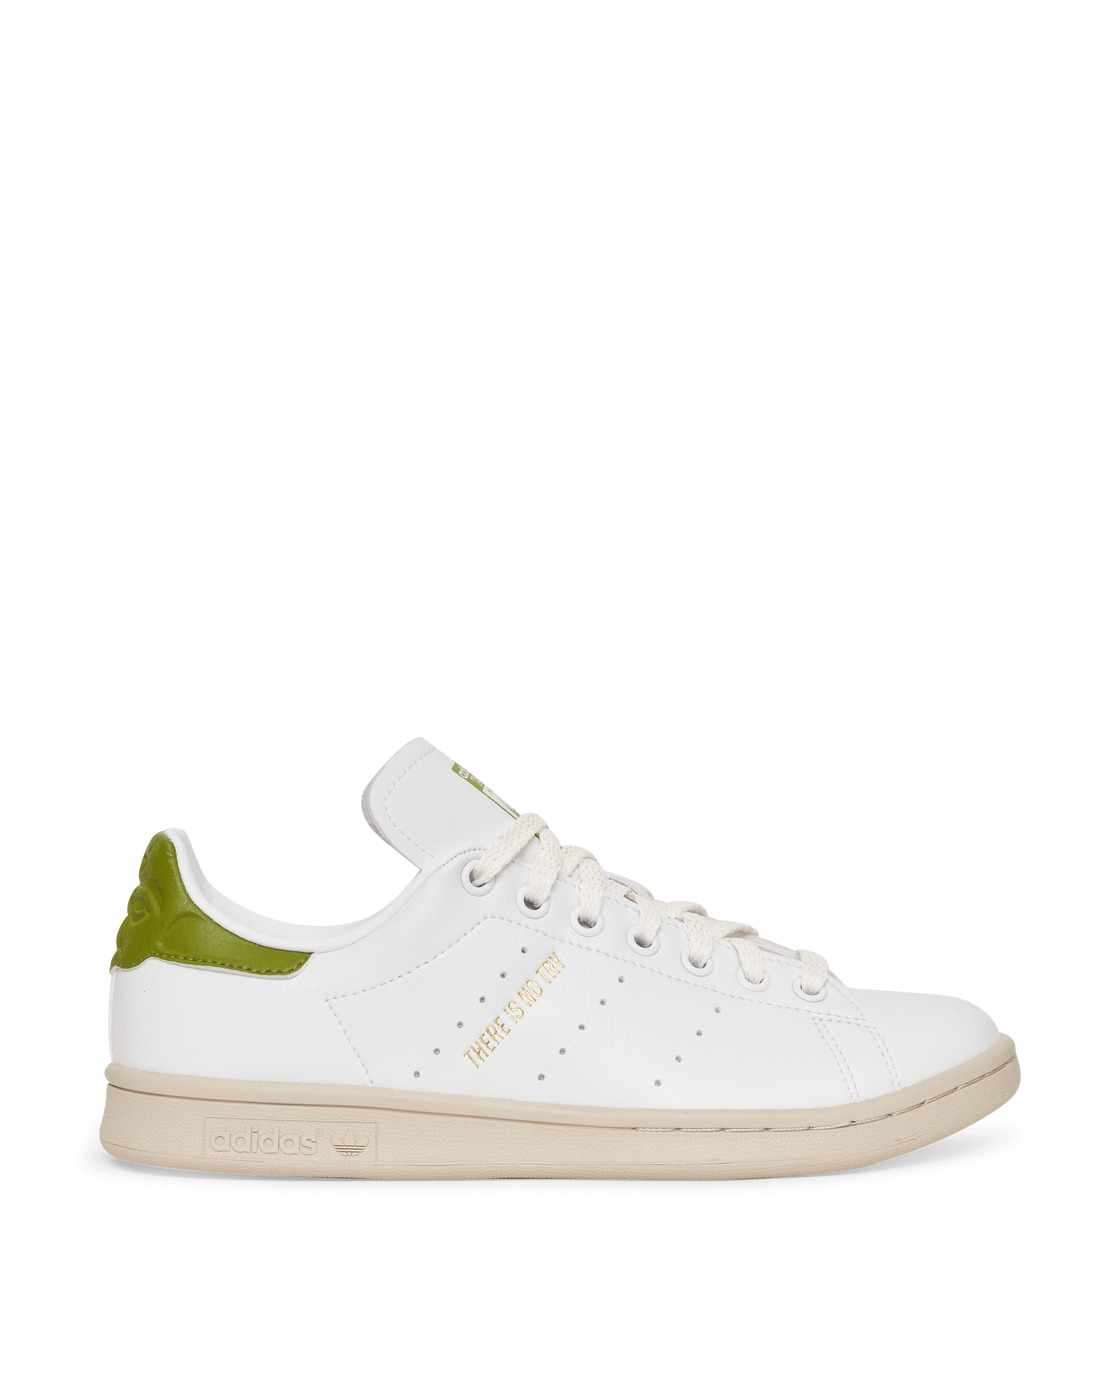 Photo: Adidas Originals Star Wars Stan Smith Sneakers Ftwr White/Clear Brown 40